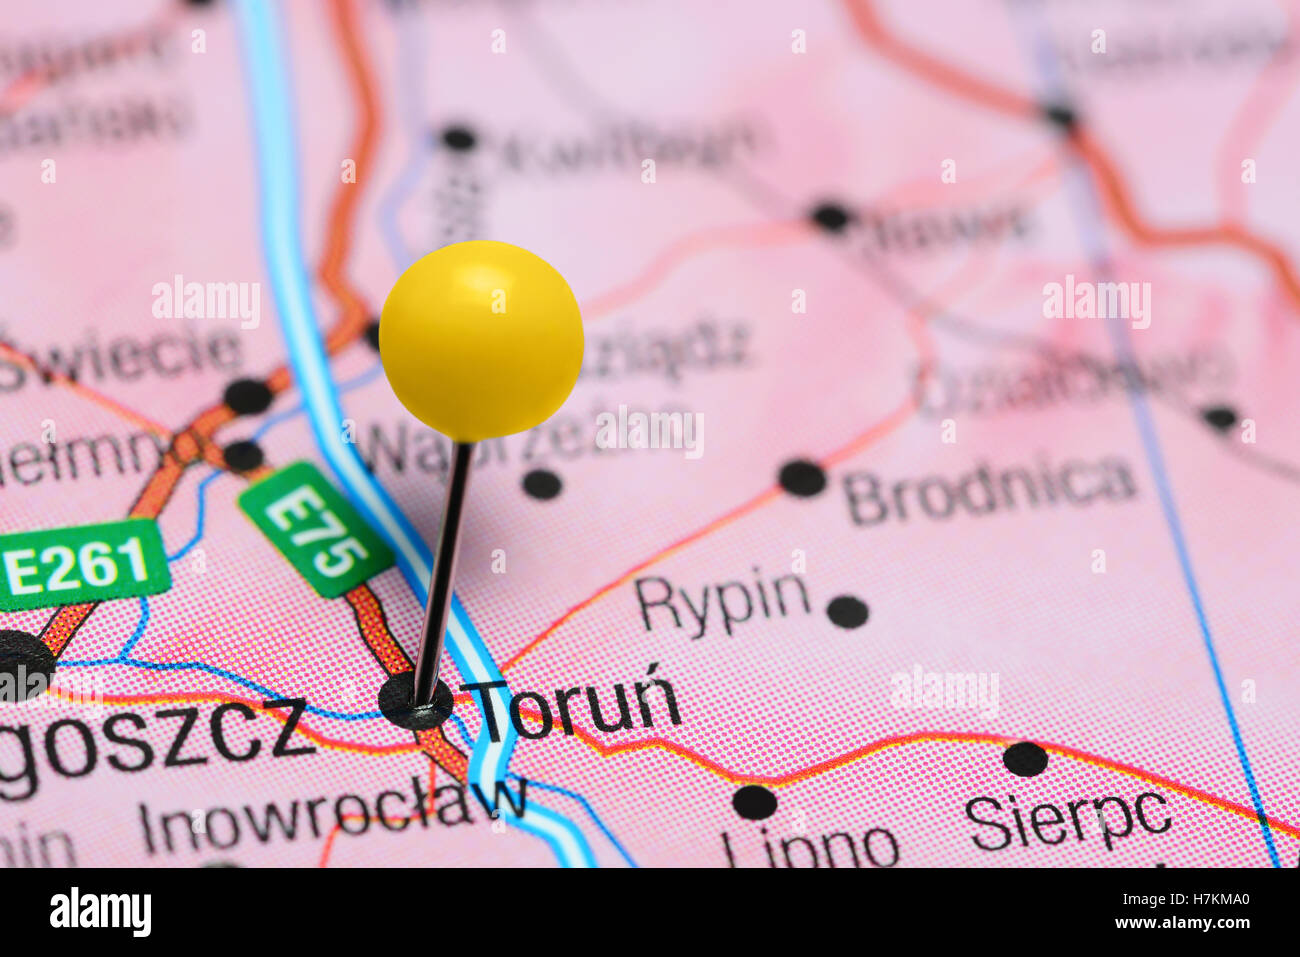 Torun pinned on a map of Poland Stock Photo 125208216 Alamy